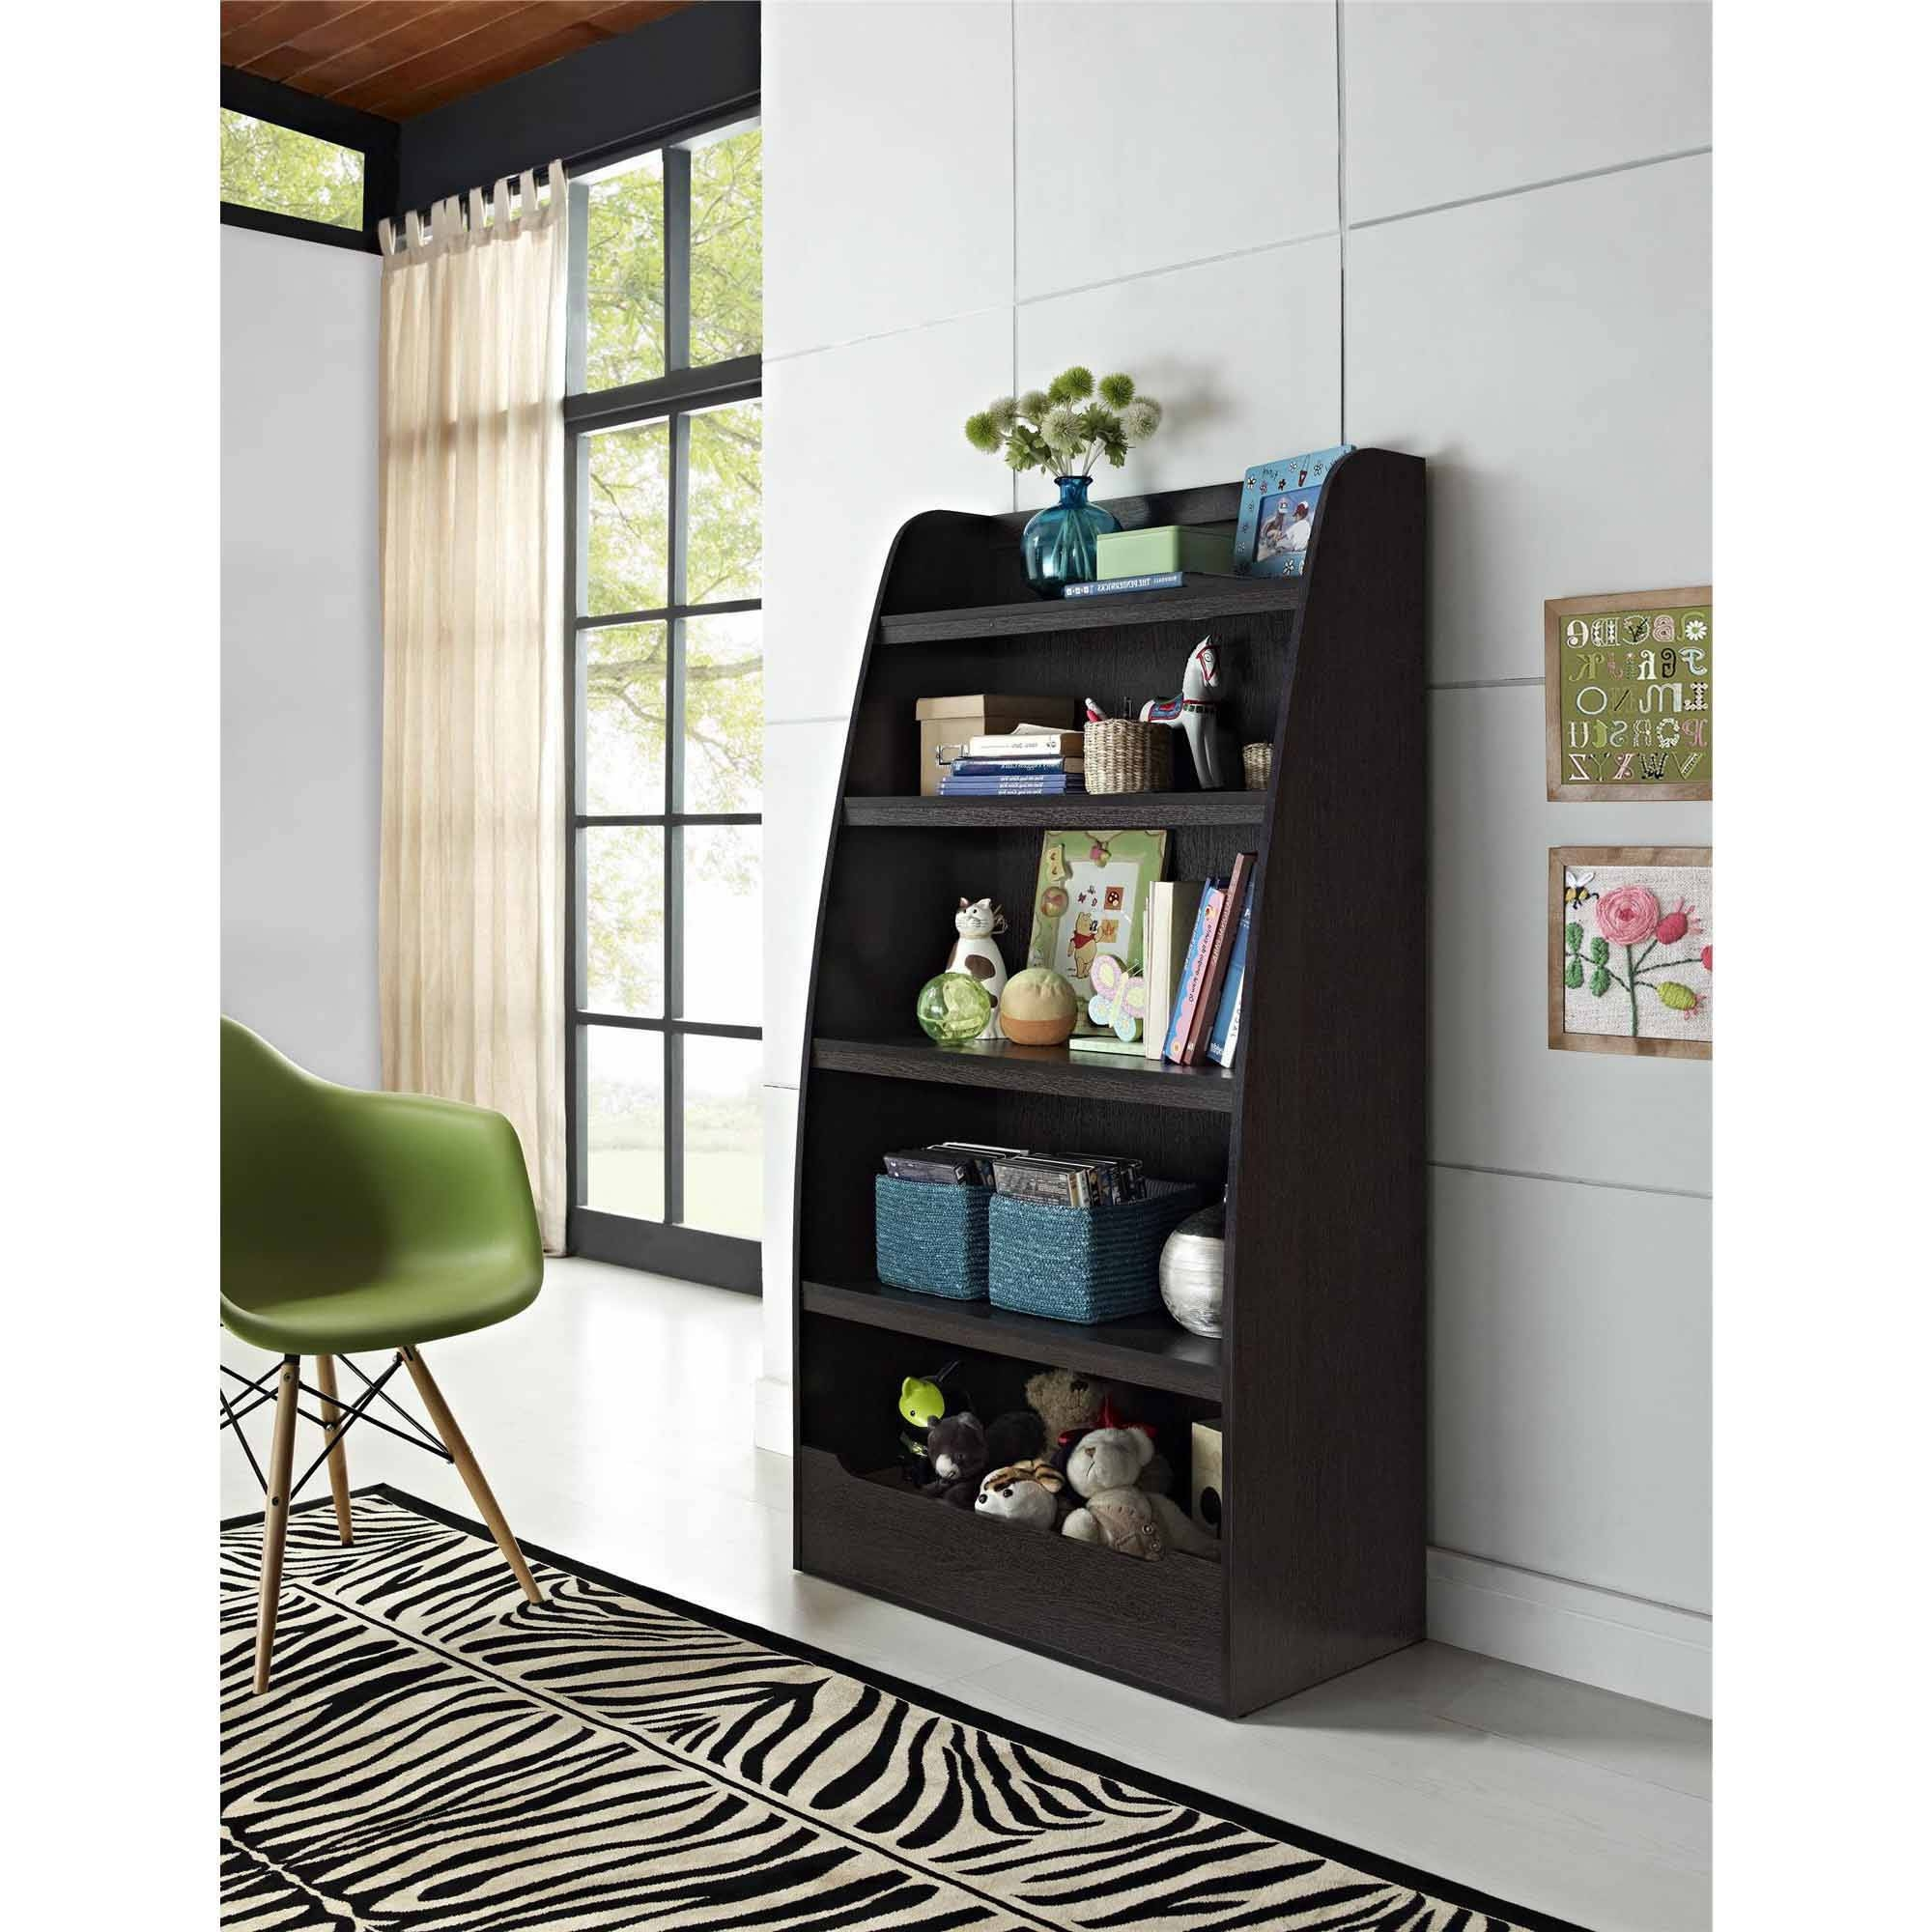 Ameriwood 3 Shelf Bookcases Regarding 2017 Ameriwood Home Mia Kids 4 Shelf Bookcase, Espresso – Walmart (View 3 of 15)